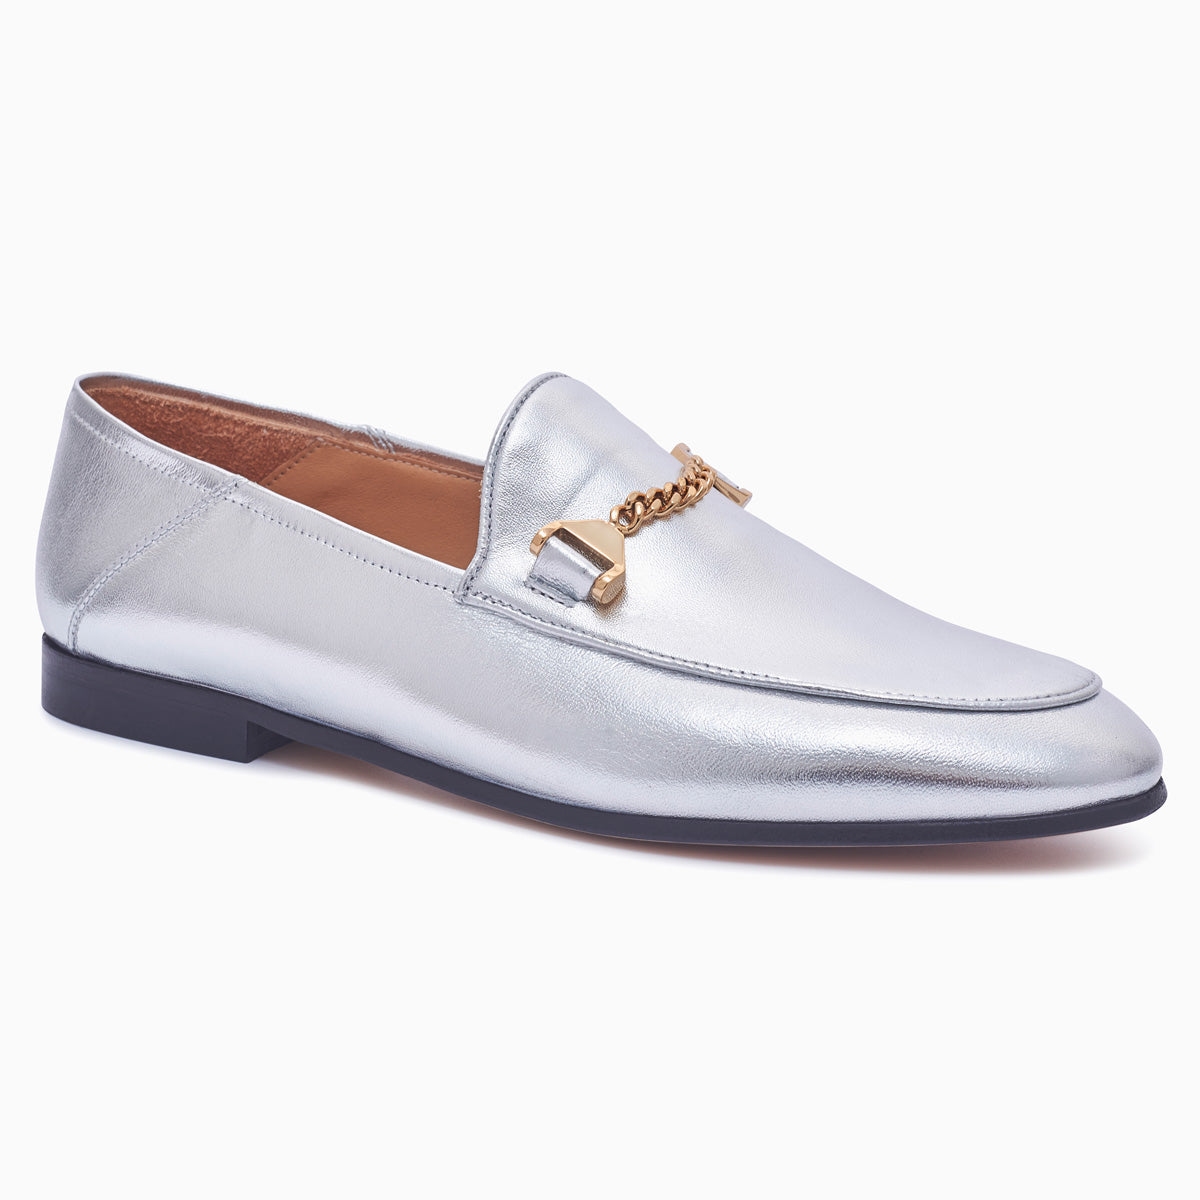 Hyusto Debbie Loafer Silver Glove 3/4 view